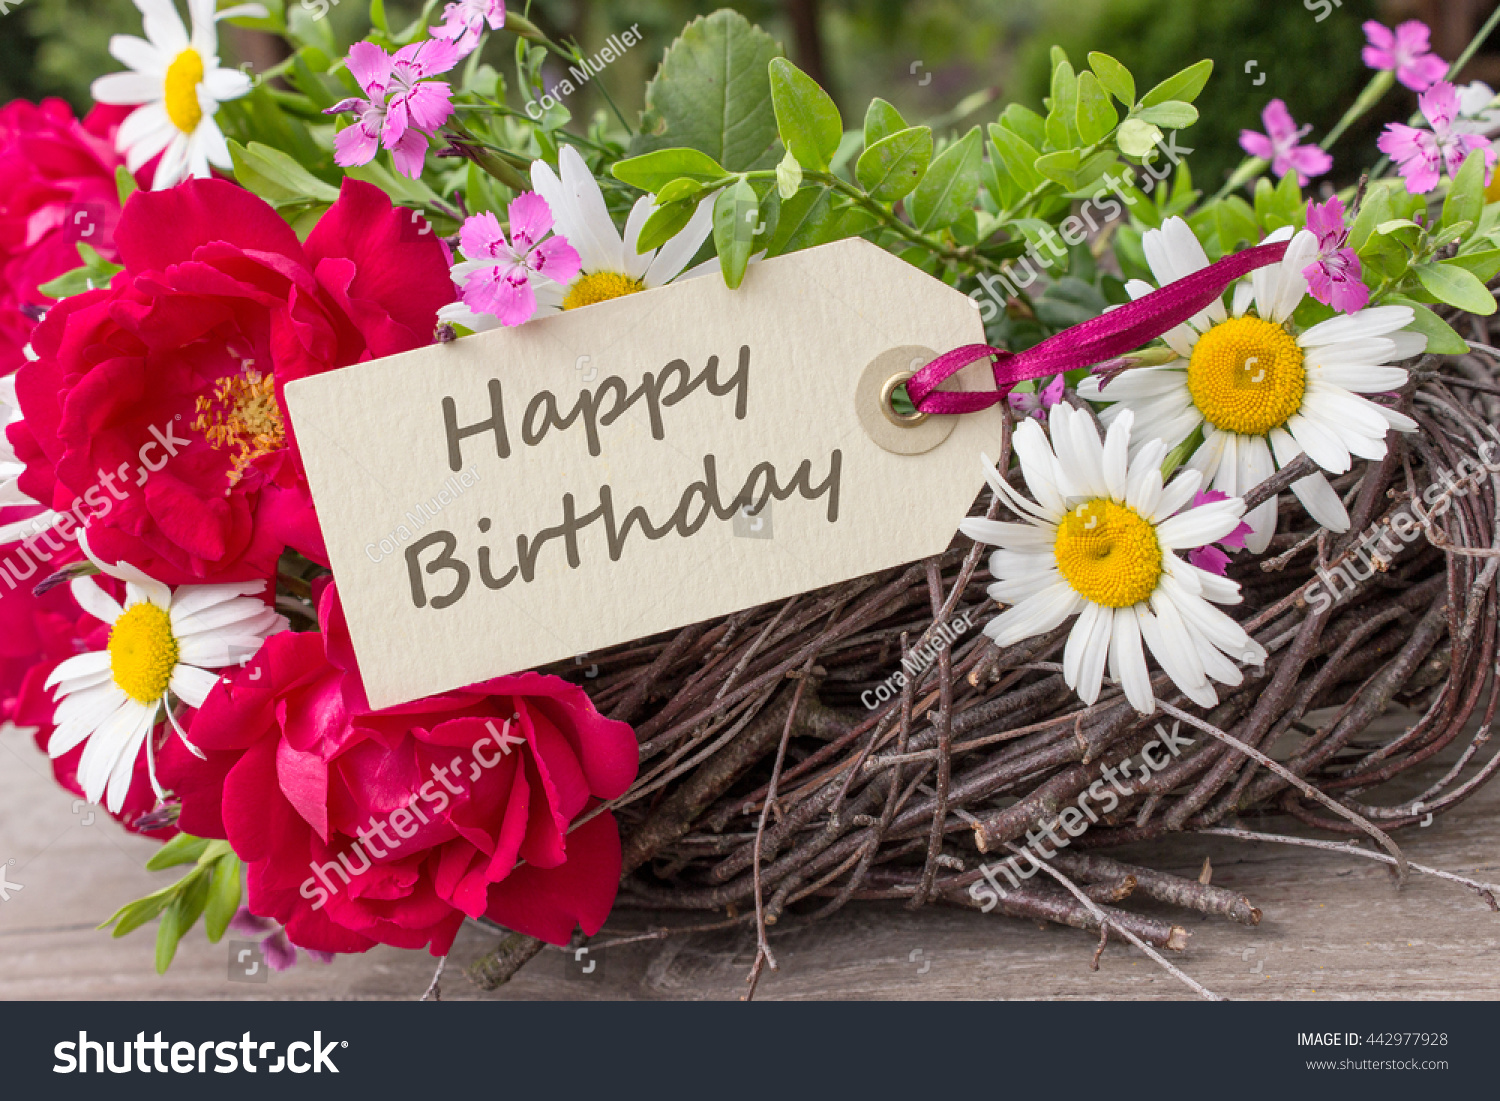 Birthday card summer flowers happy birthday stock photo edit now birthday card with summer flowers happy birthday birthday izmirmasajfo